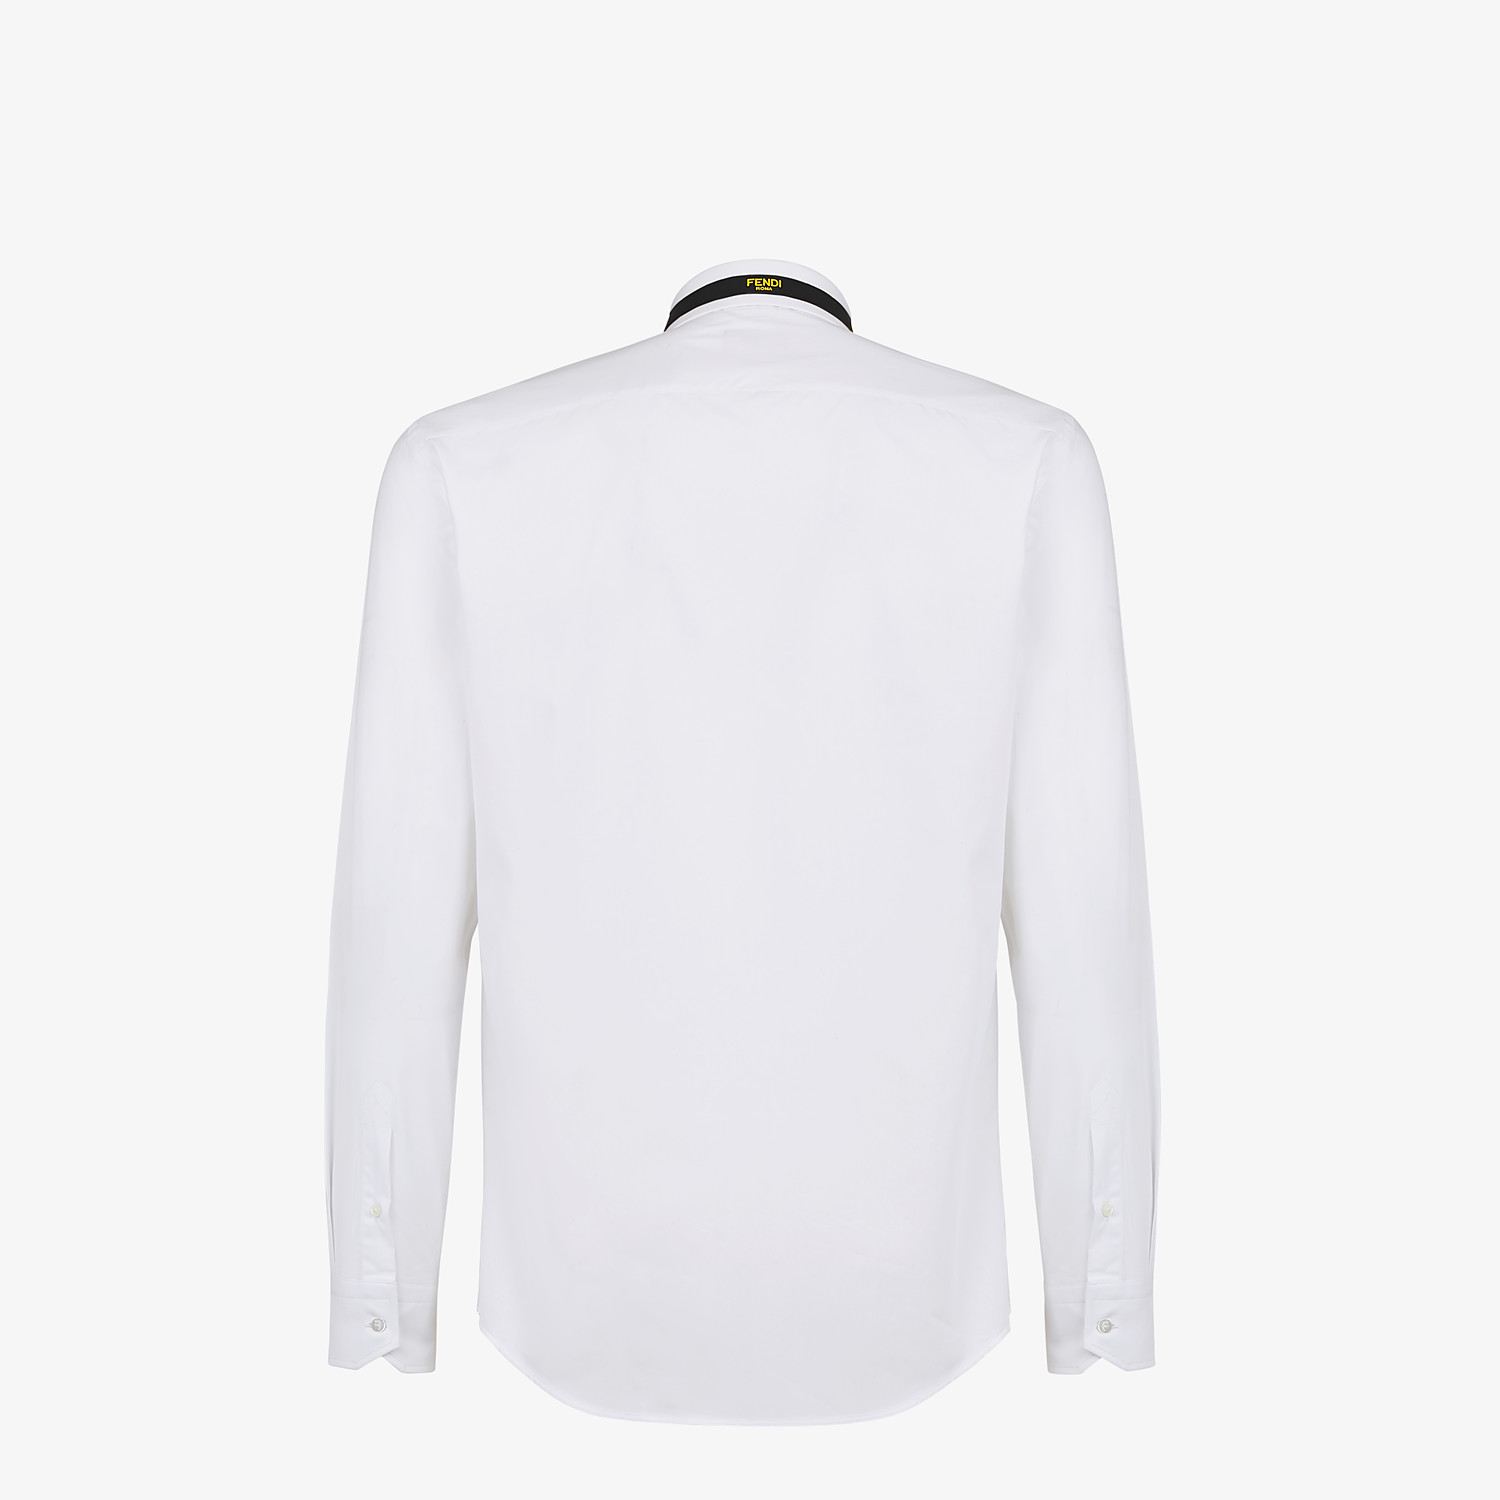 FENDI SHIRT - White cotton shirt - view 2 detail